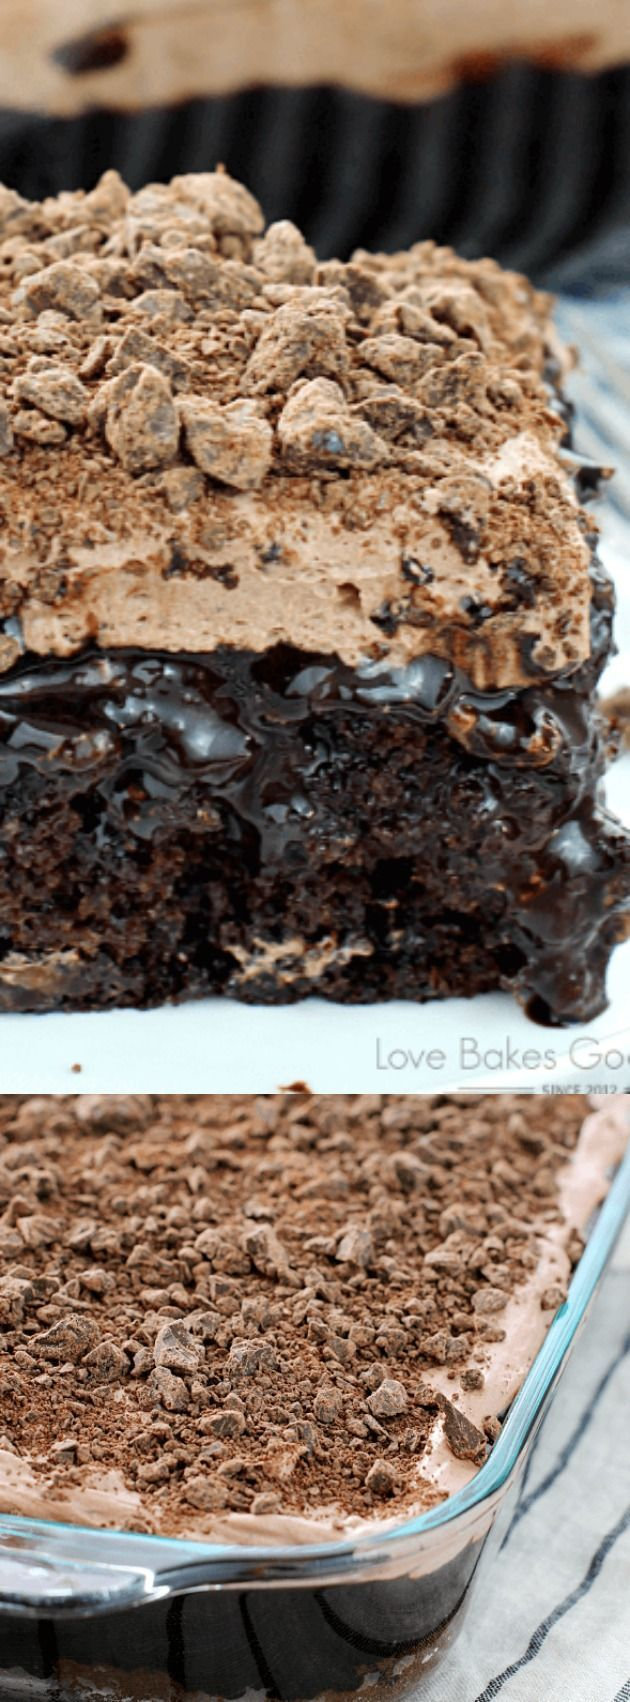 This Death by Chocolate Poke Cake from Love Bakes Good Cakes is the perfect go-to recipe when you want something chocolaty and sinfully delicious. This recipe is seriously a chocolate lovers dream come true. It has chocolate, on chocolate, on chocolate, o